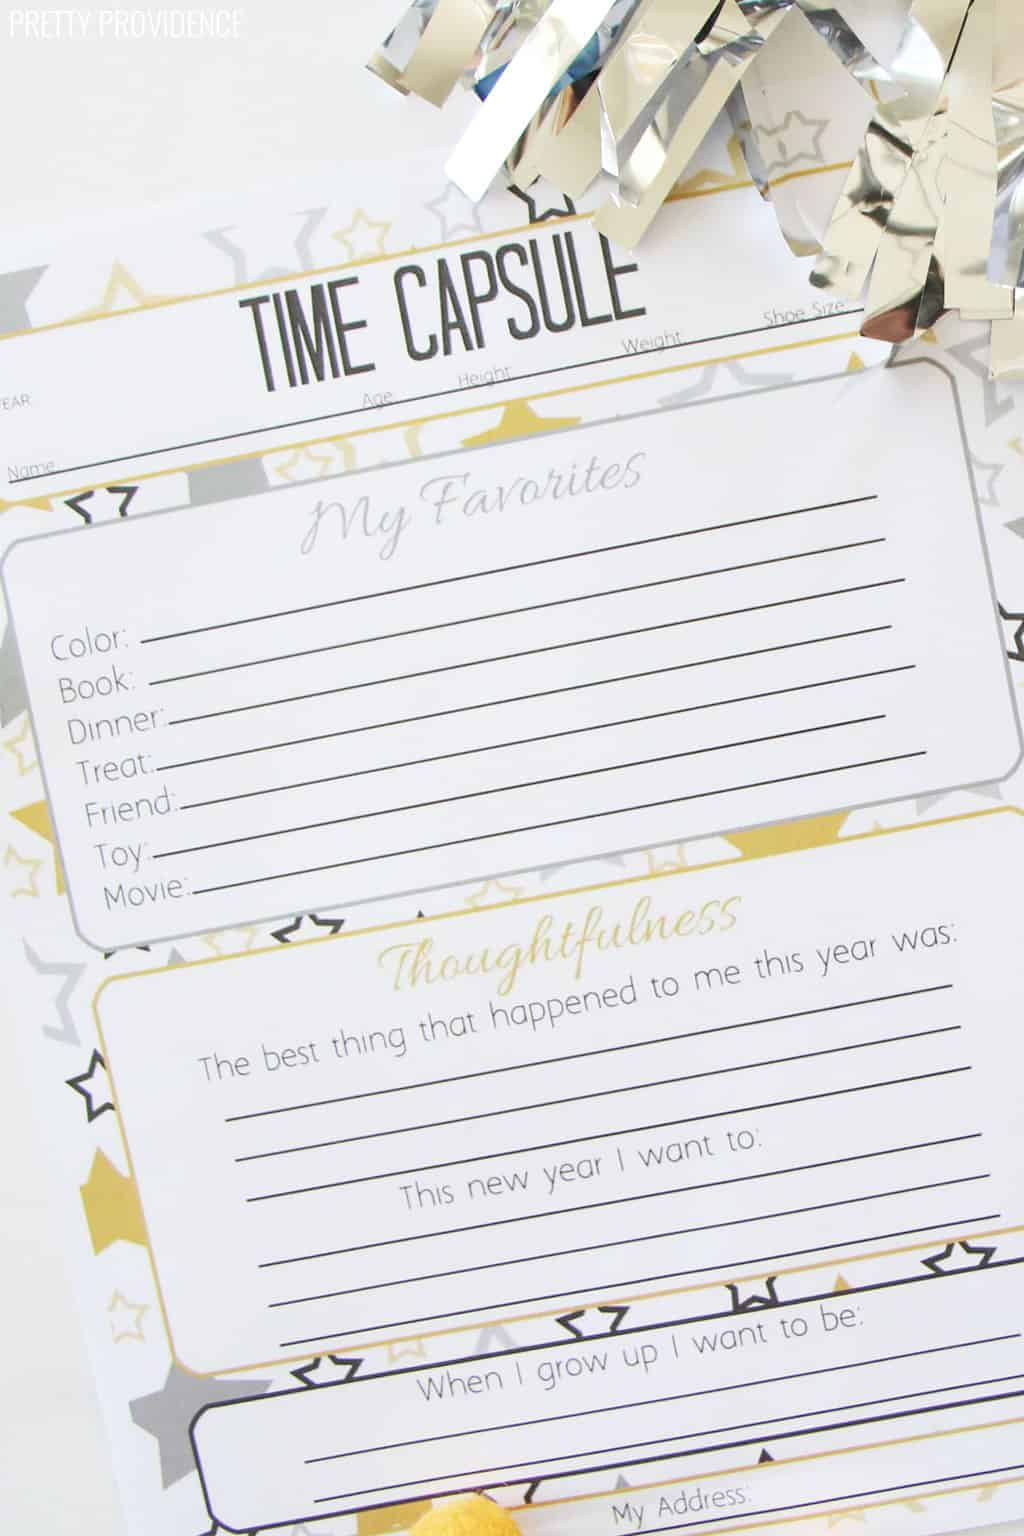 Time Capsule printable questionnaire for kids, close-up of paper